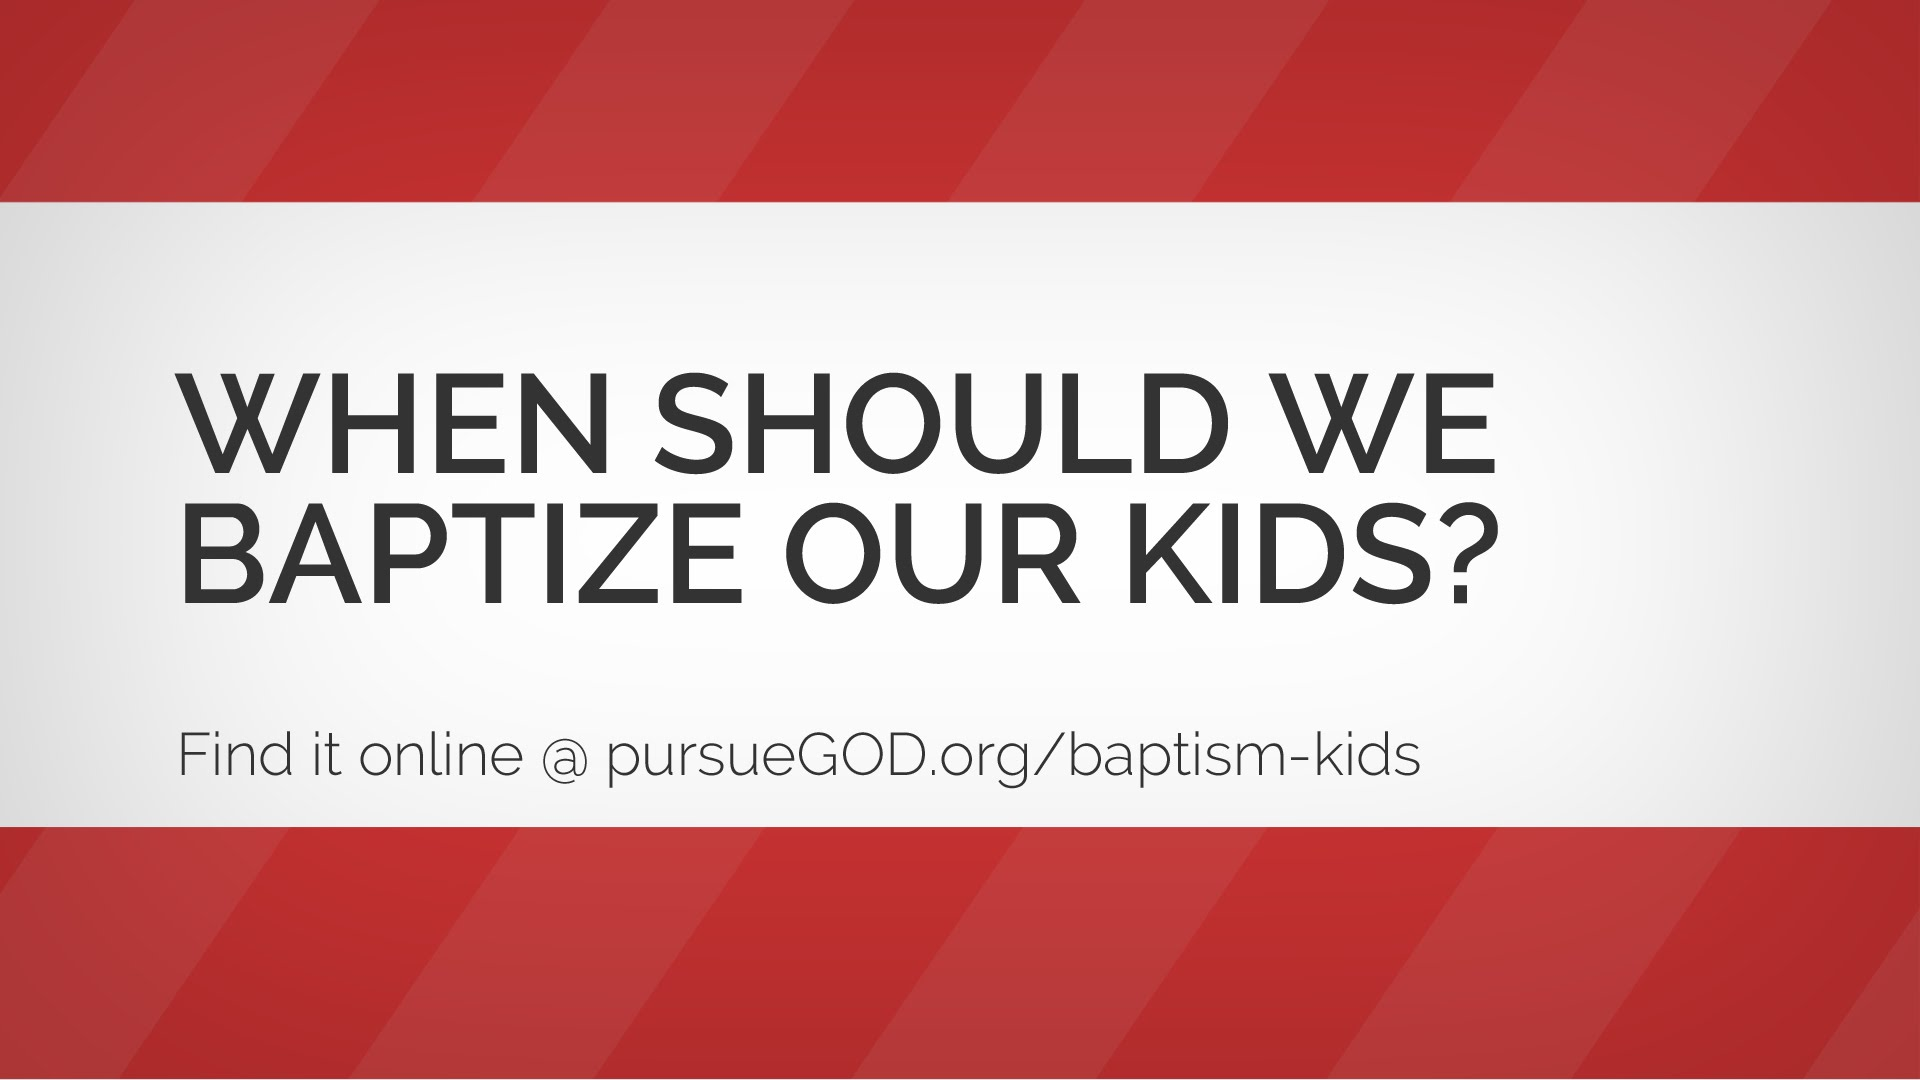 When Should We Baptize Our Kids?